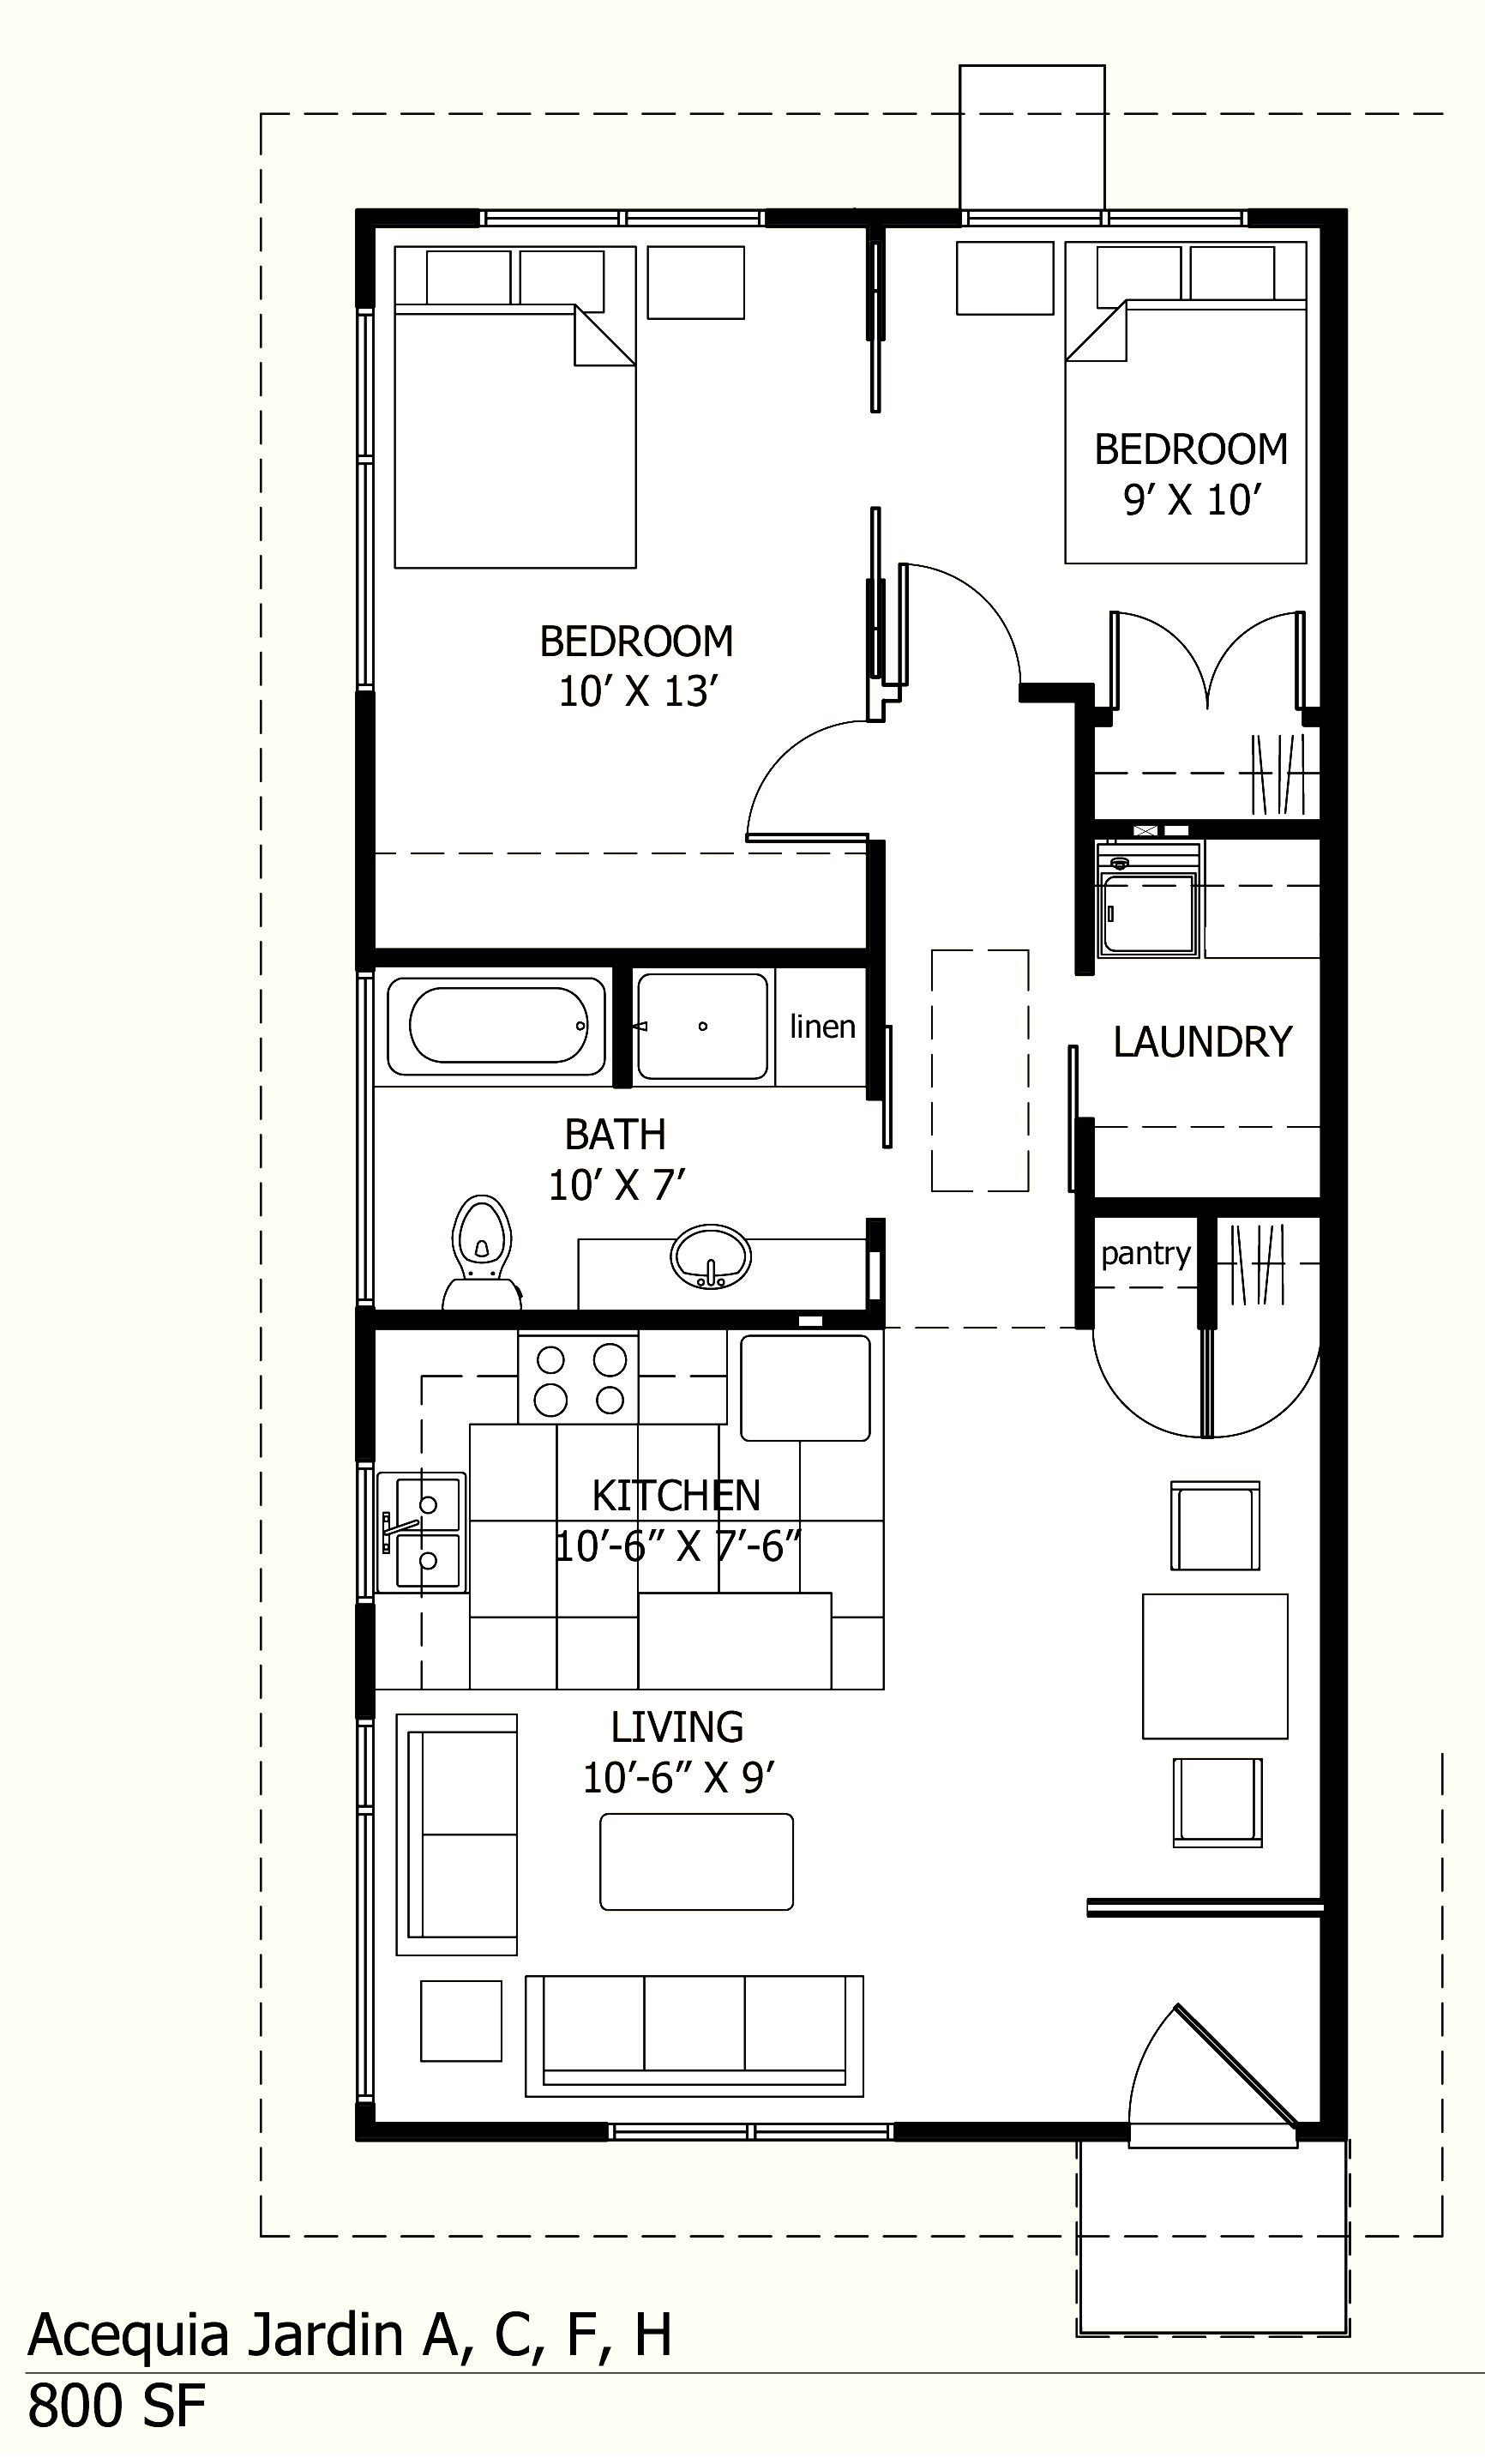 800 Sq Ft With Images Small House Layout Small House Plans